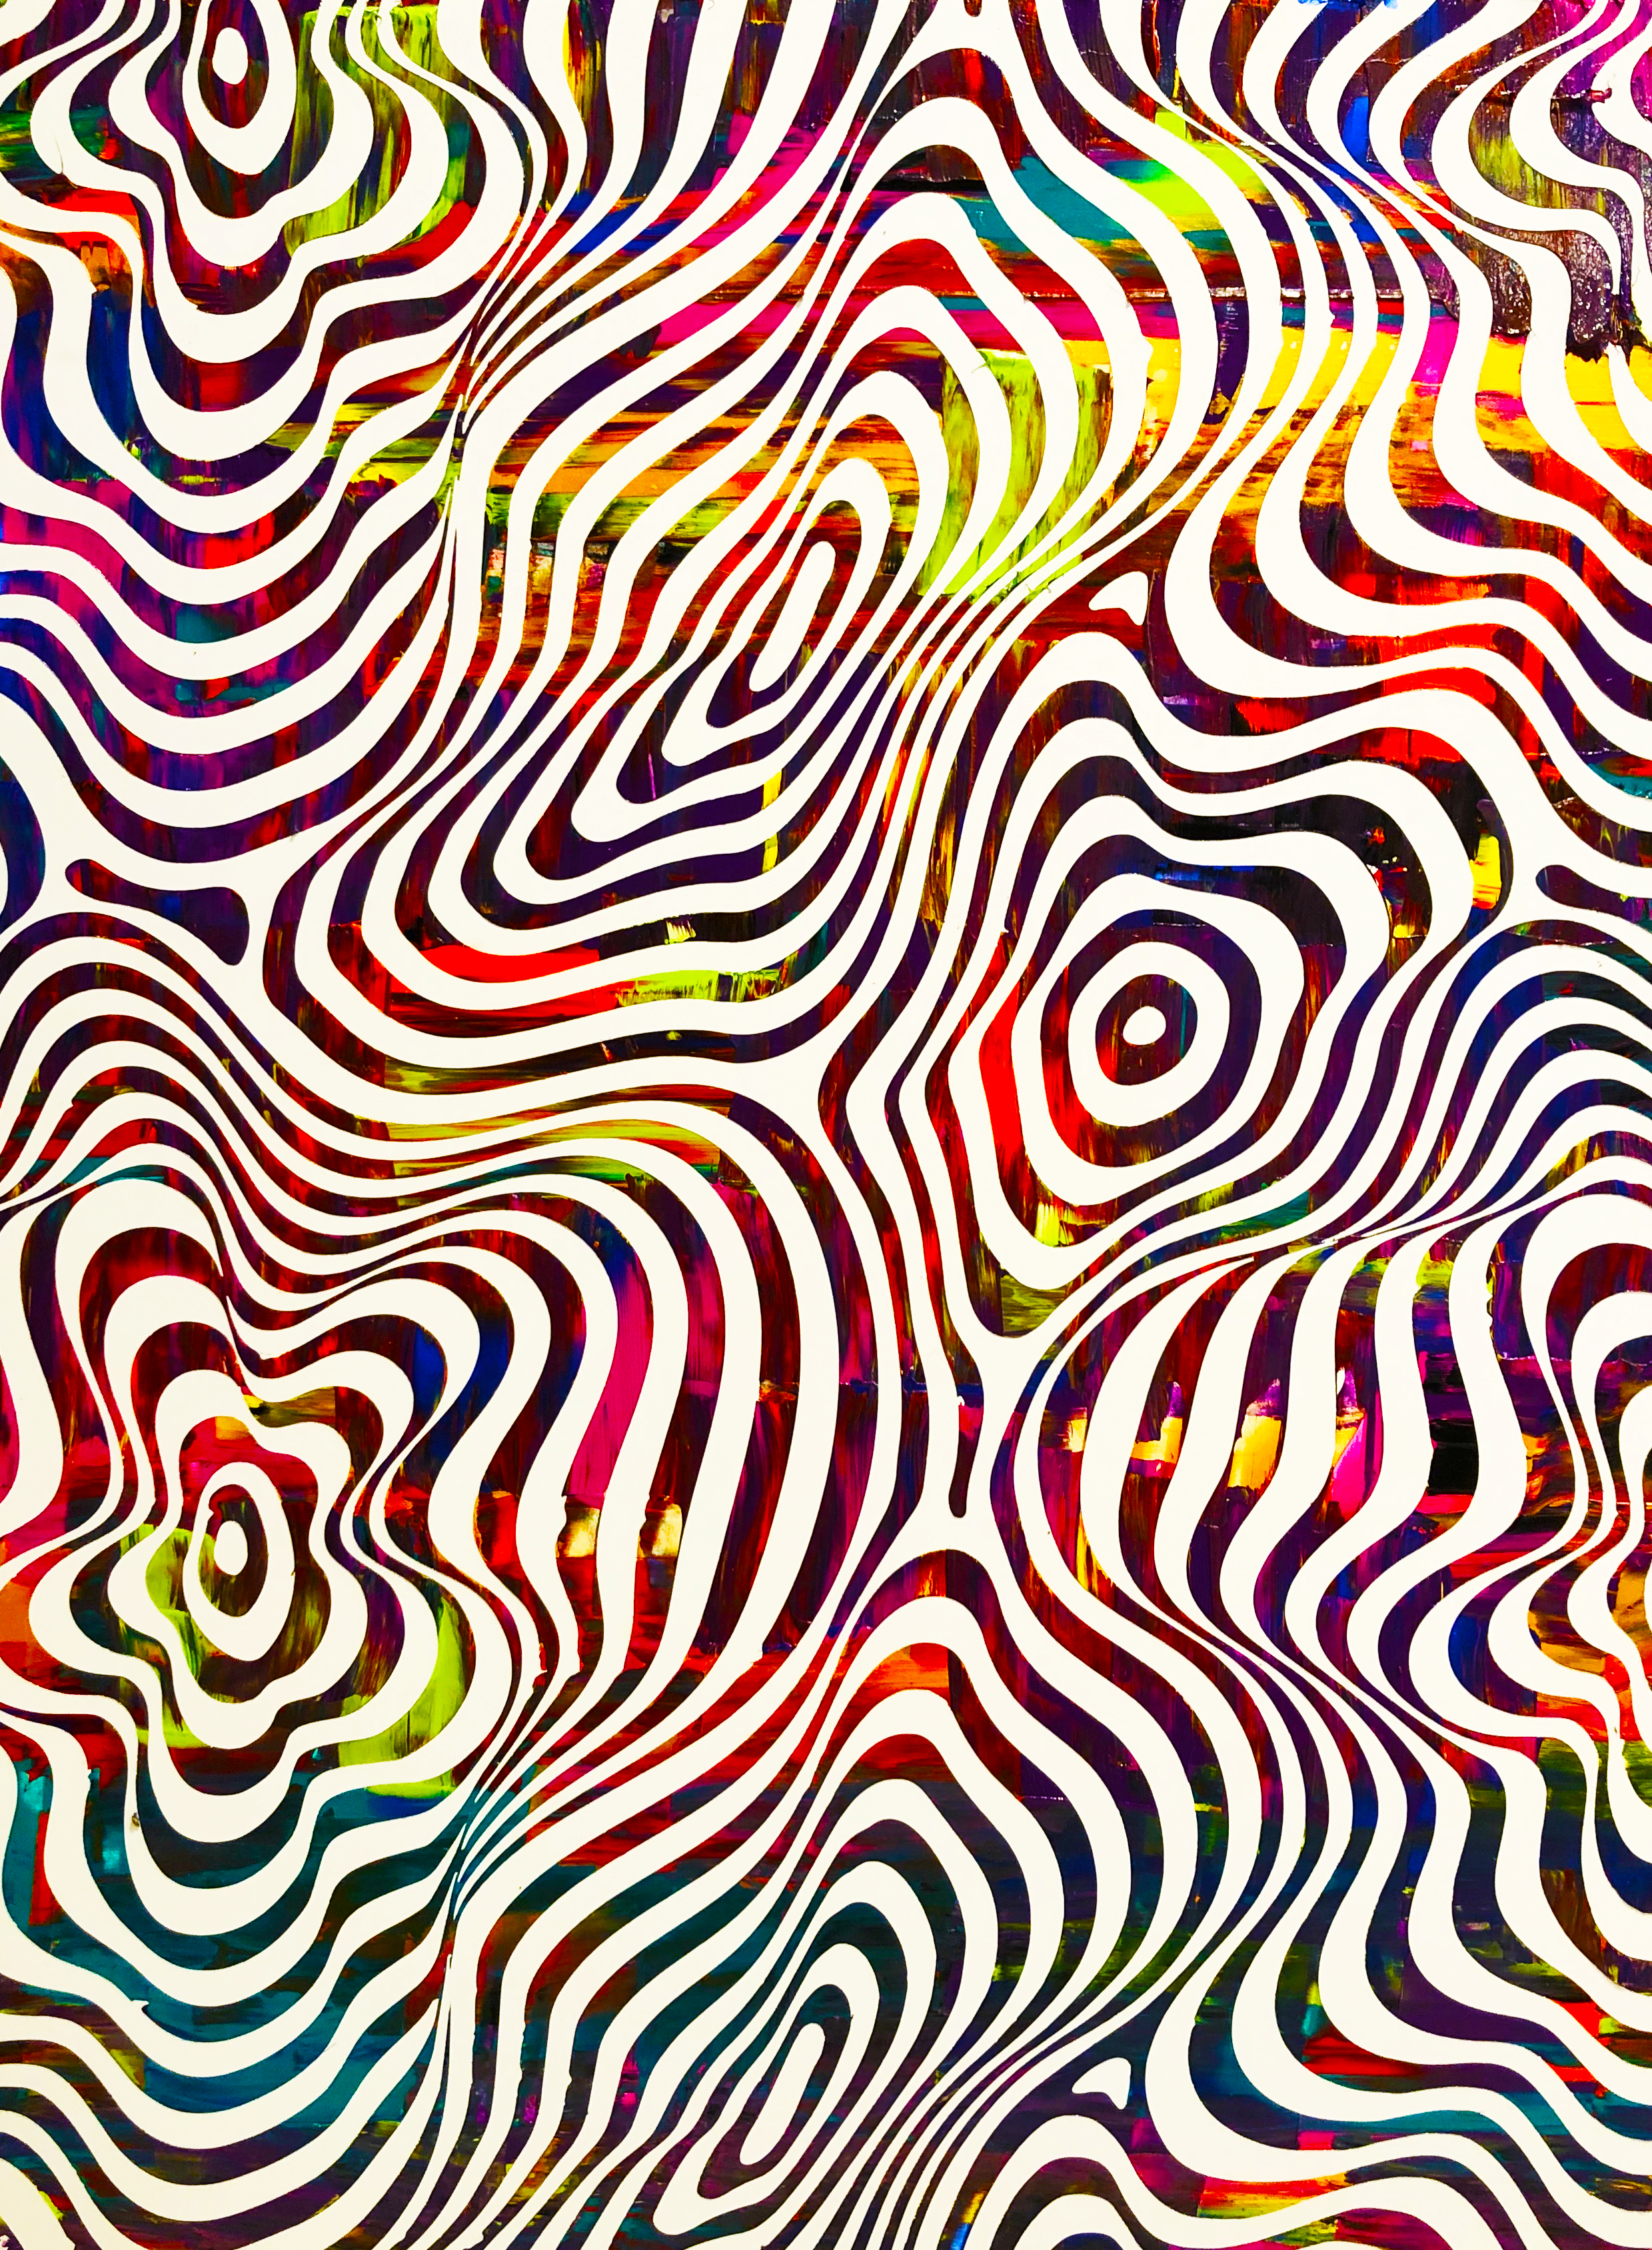 HUE Gallery of Contemporary Art - Sean Christopher Ward - Twisting and Turning - Acrylic on MDF - 12x16 - 2018 - $375.JPG